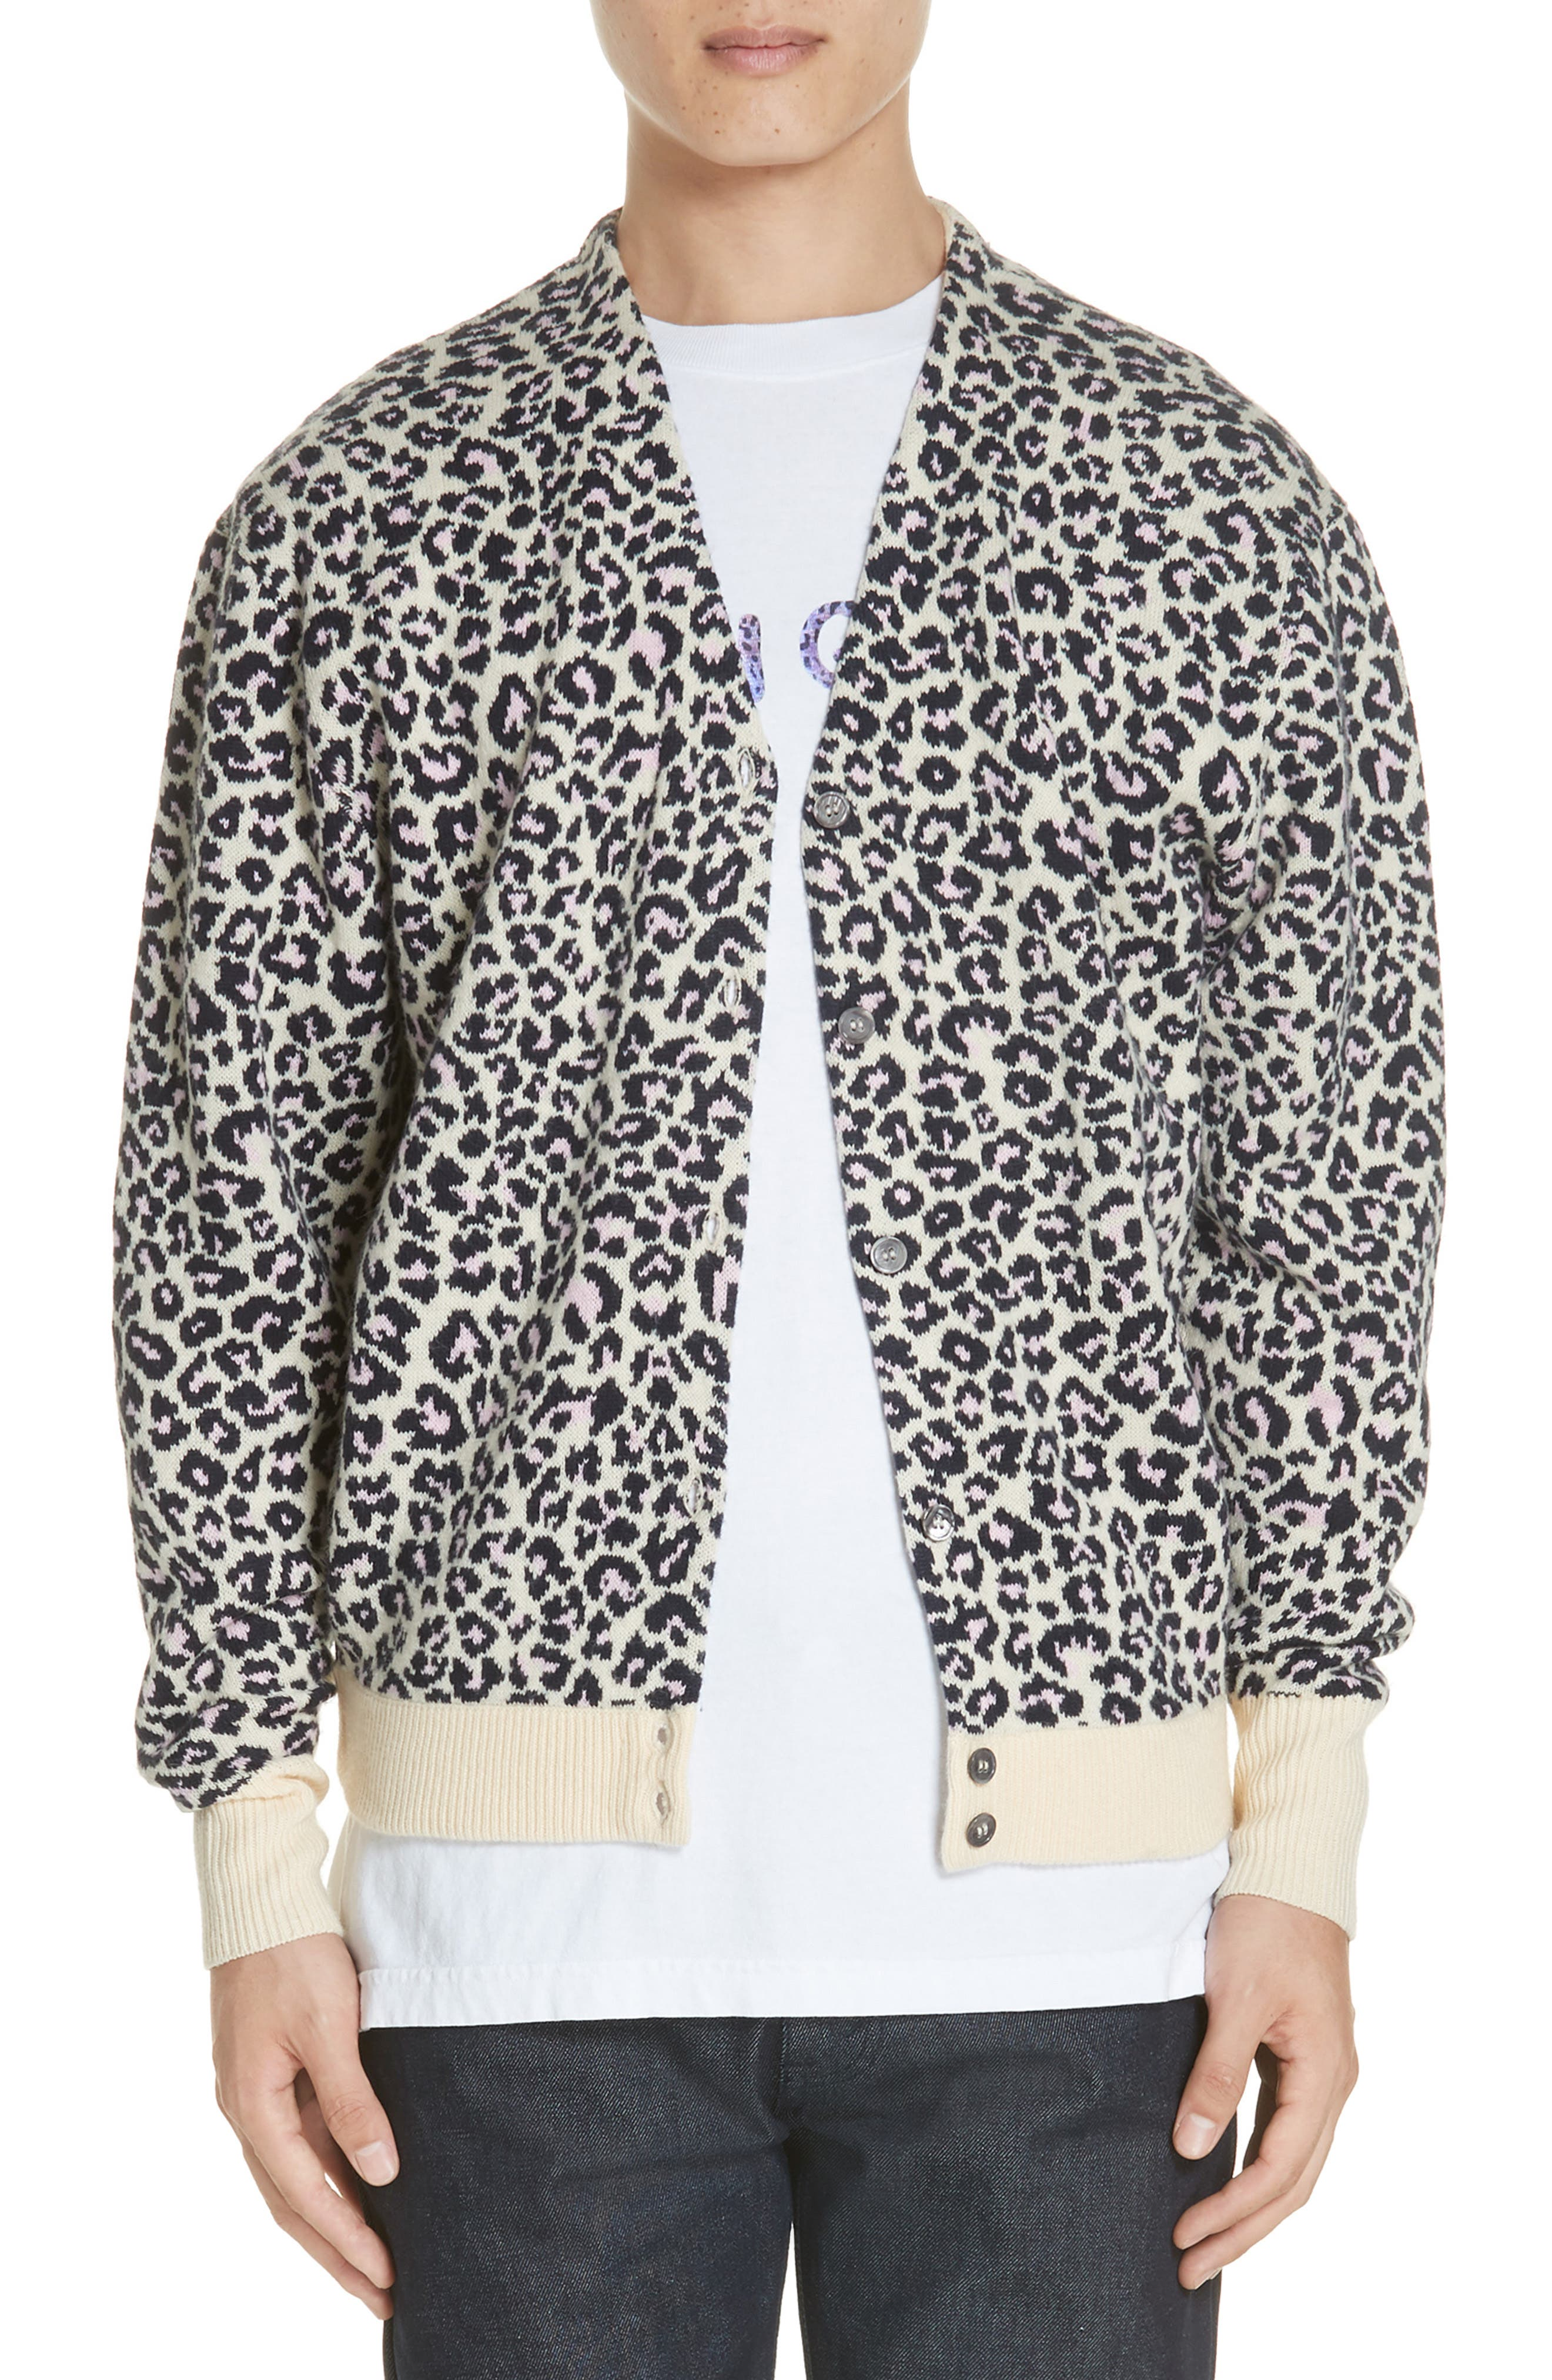 Noon Goons Chatterbox Cardigan, Pink